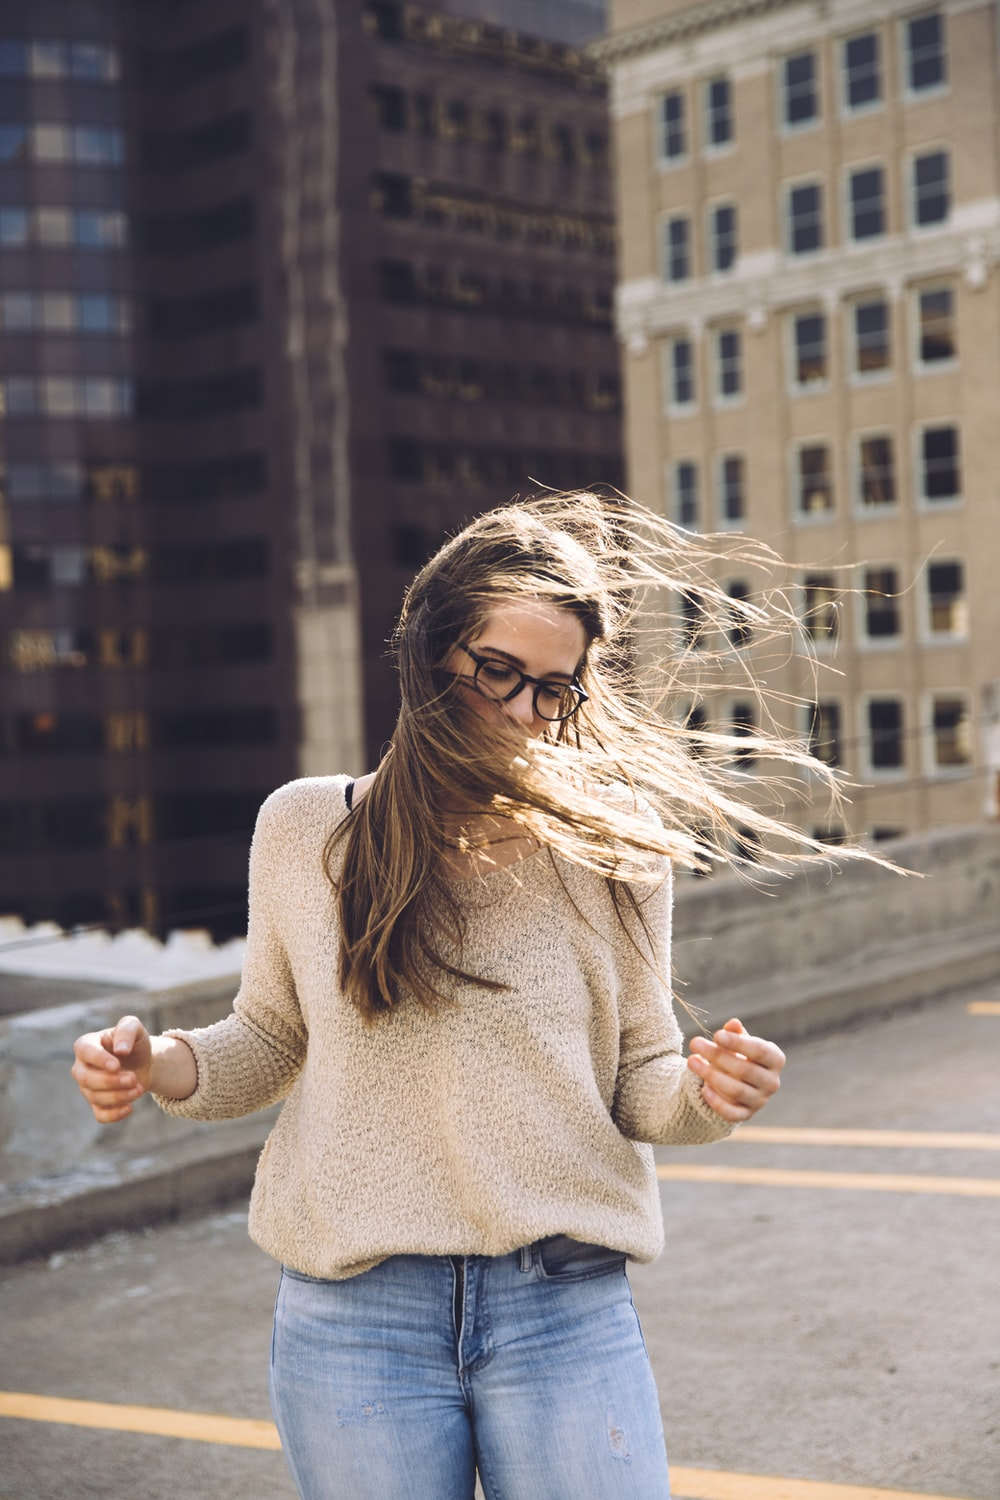 woman standing near building with hair being blown by wind